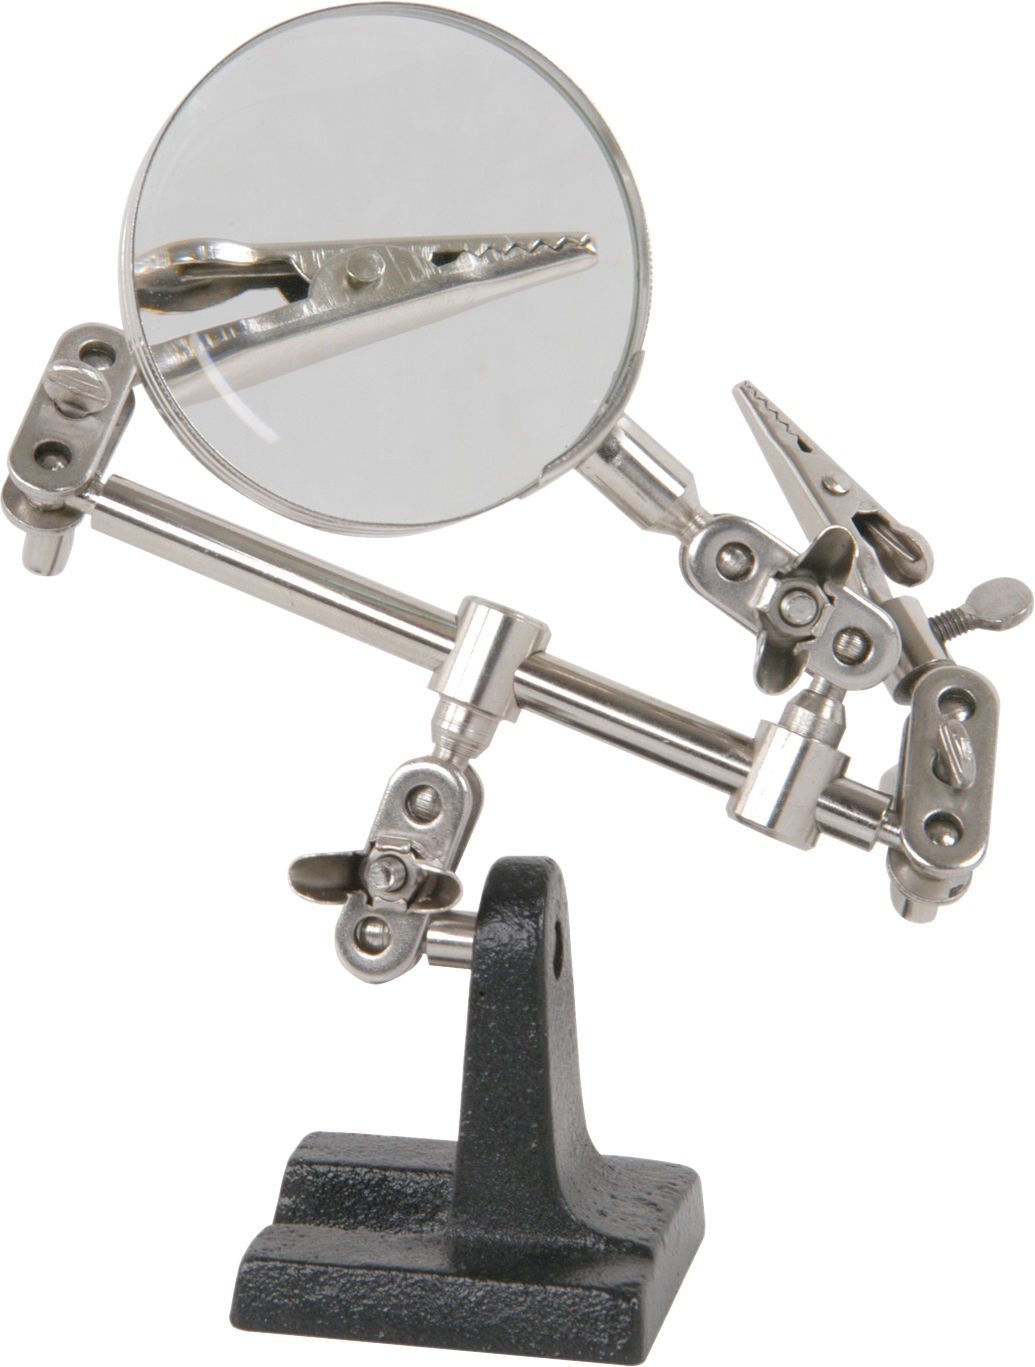 Helping Hands And Magnifier All Top Notch